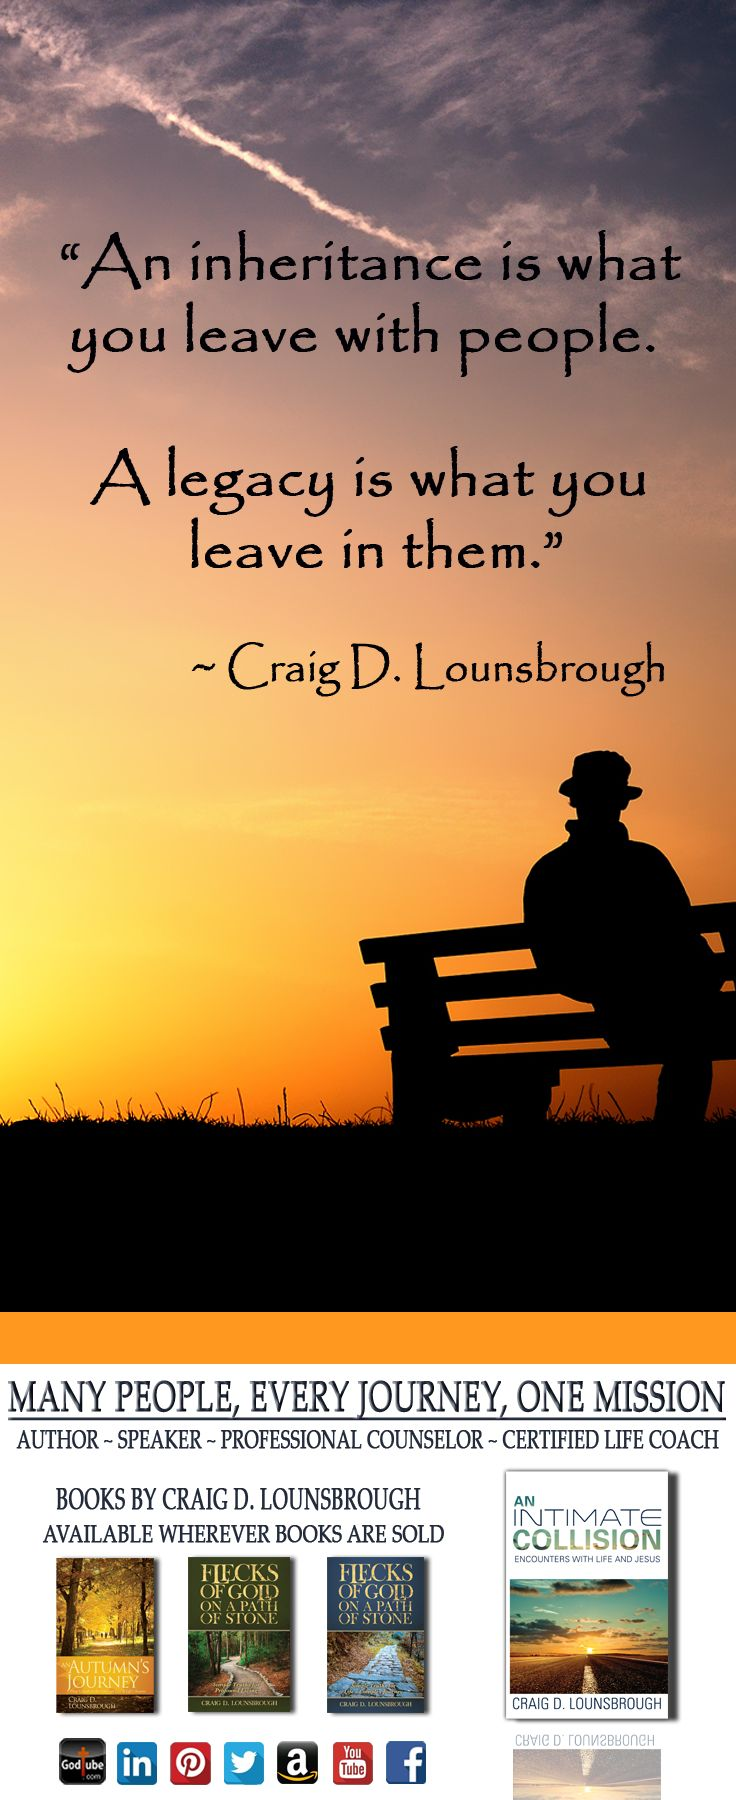 If the footprints I leave through life are no bigger than my shoe-size, I'm probably not leaving a whole lot for others to follow.  It might therefore be wise to swap out my shoe-size for God's.  See more at https://clounsbrough.wordpress.com/.